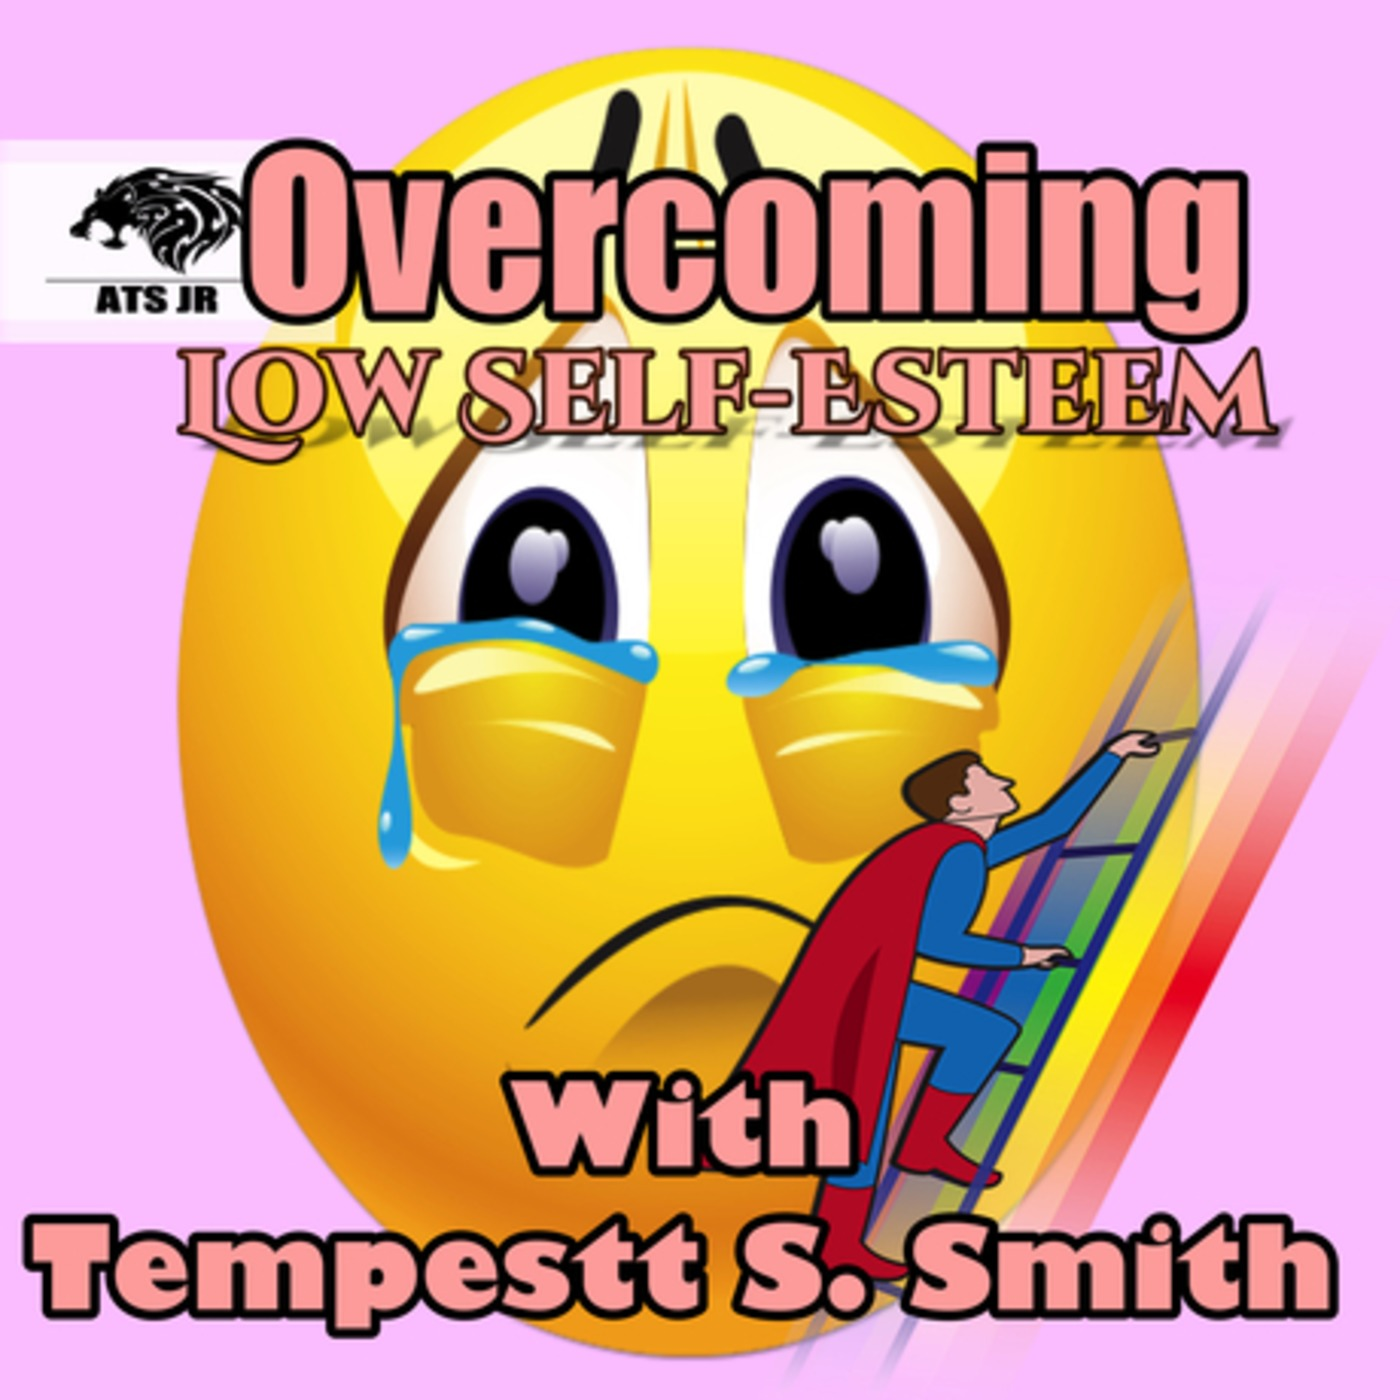 s2e13 Affirmations To Remember Part 1 by Tempestt S Smith